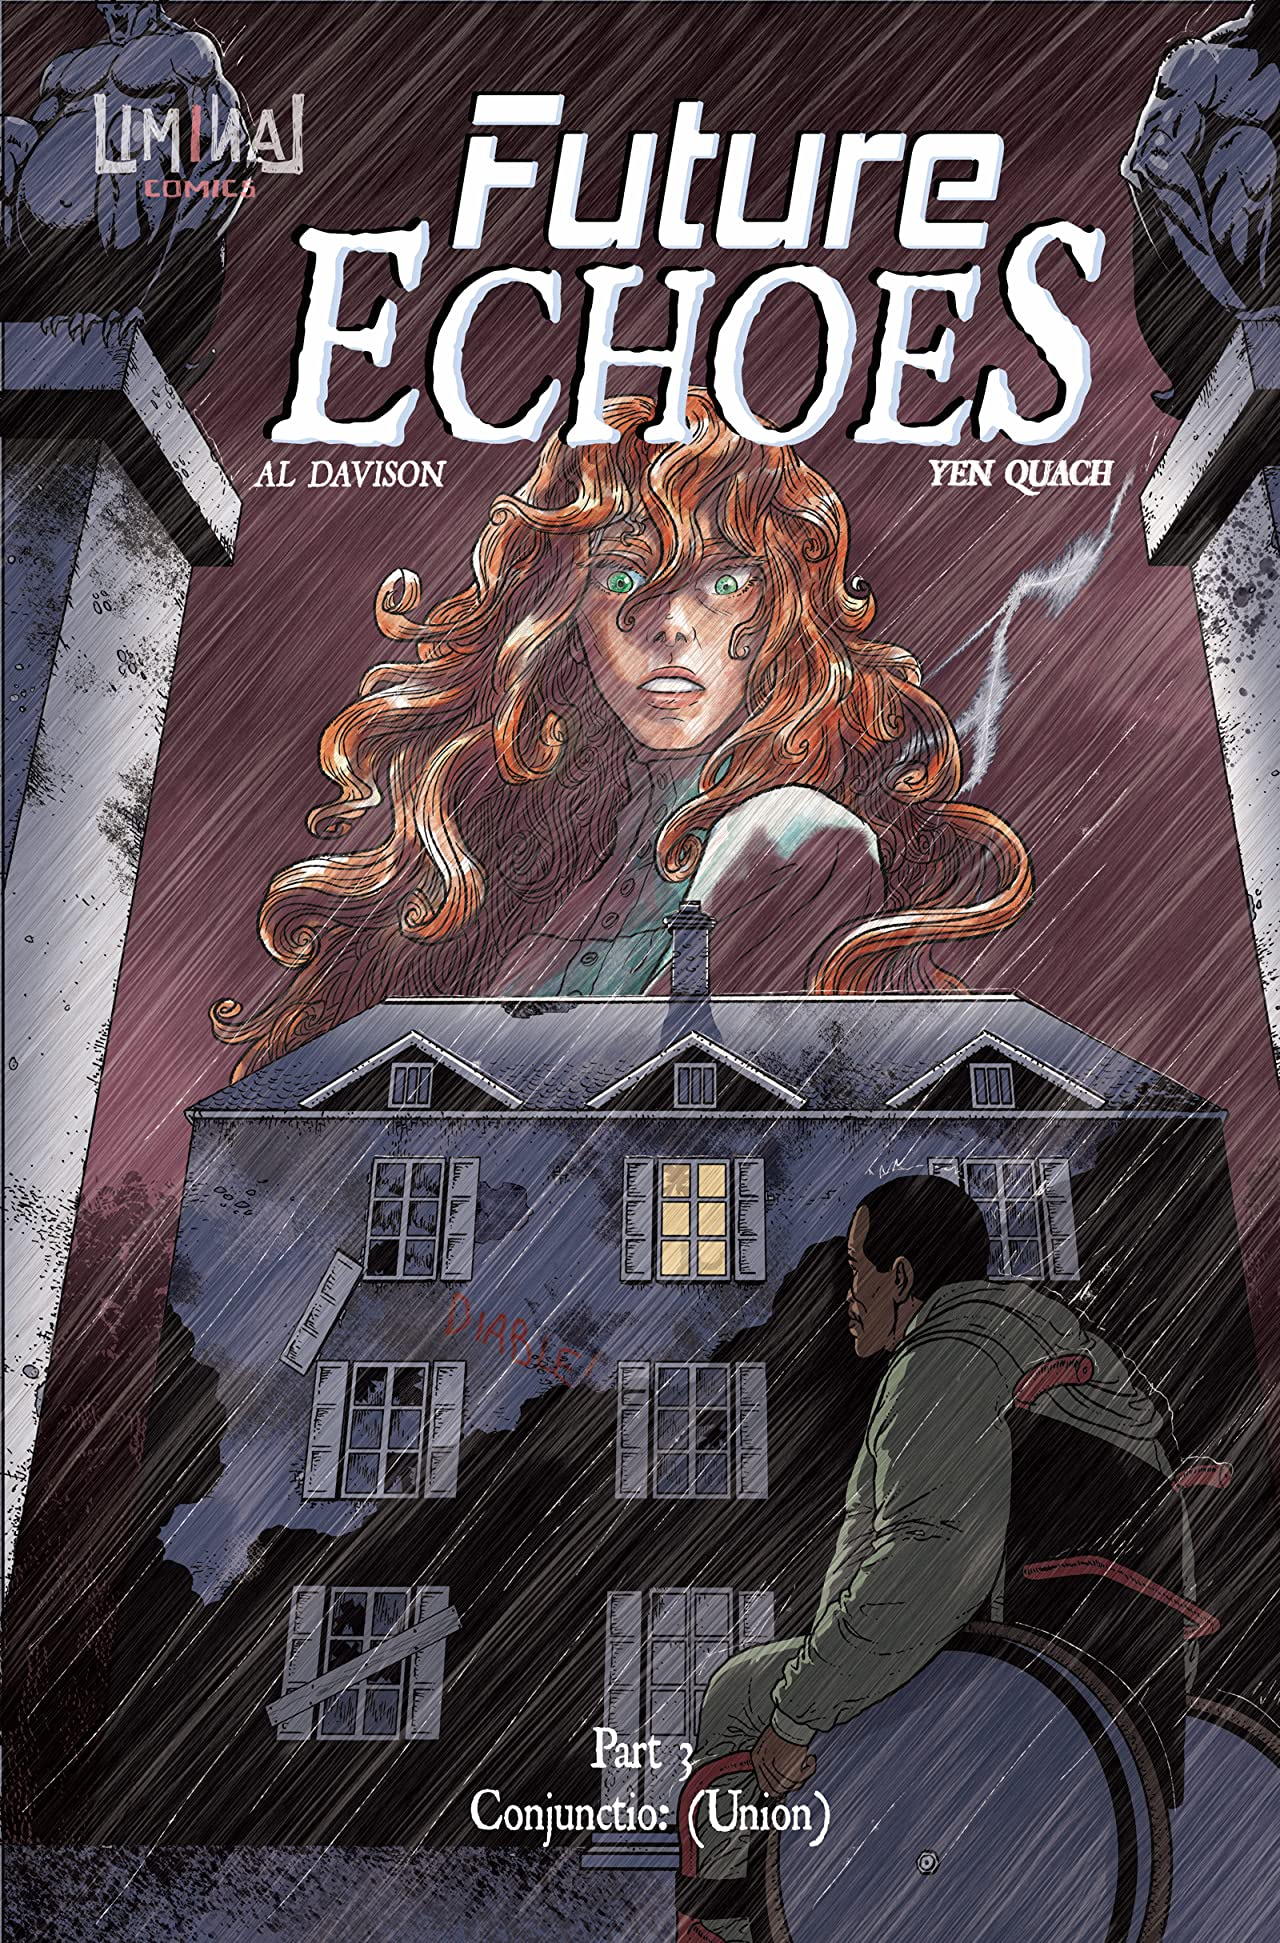 Future Echoes #3